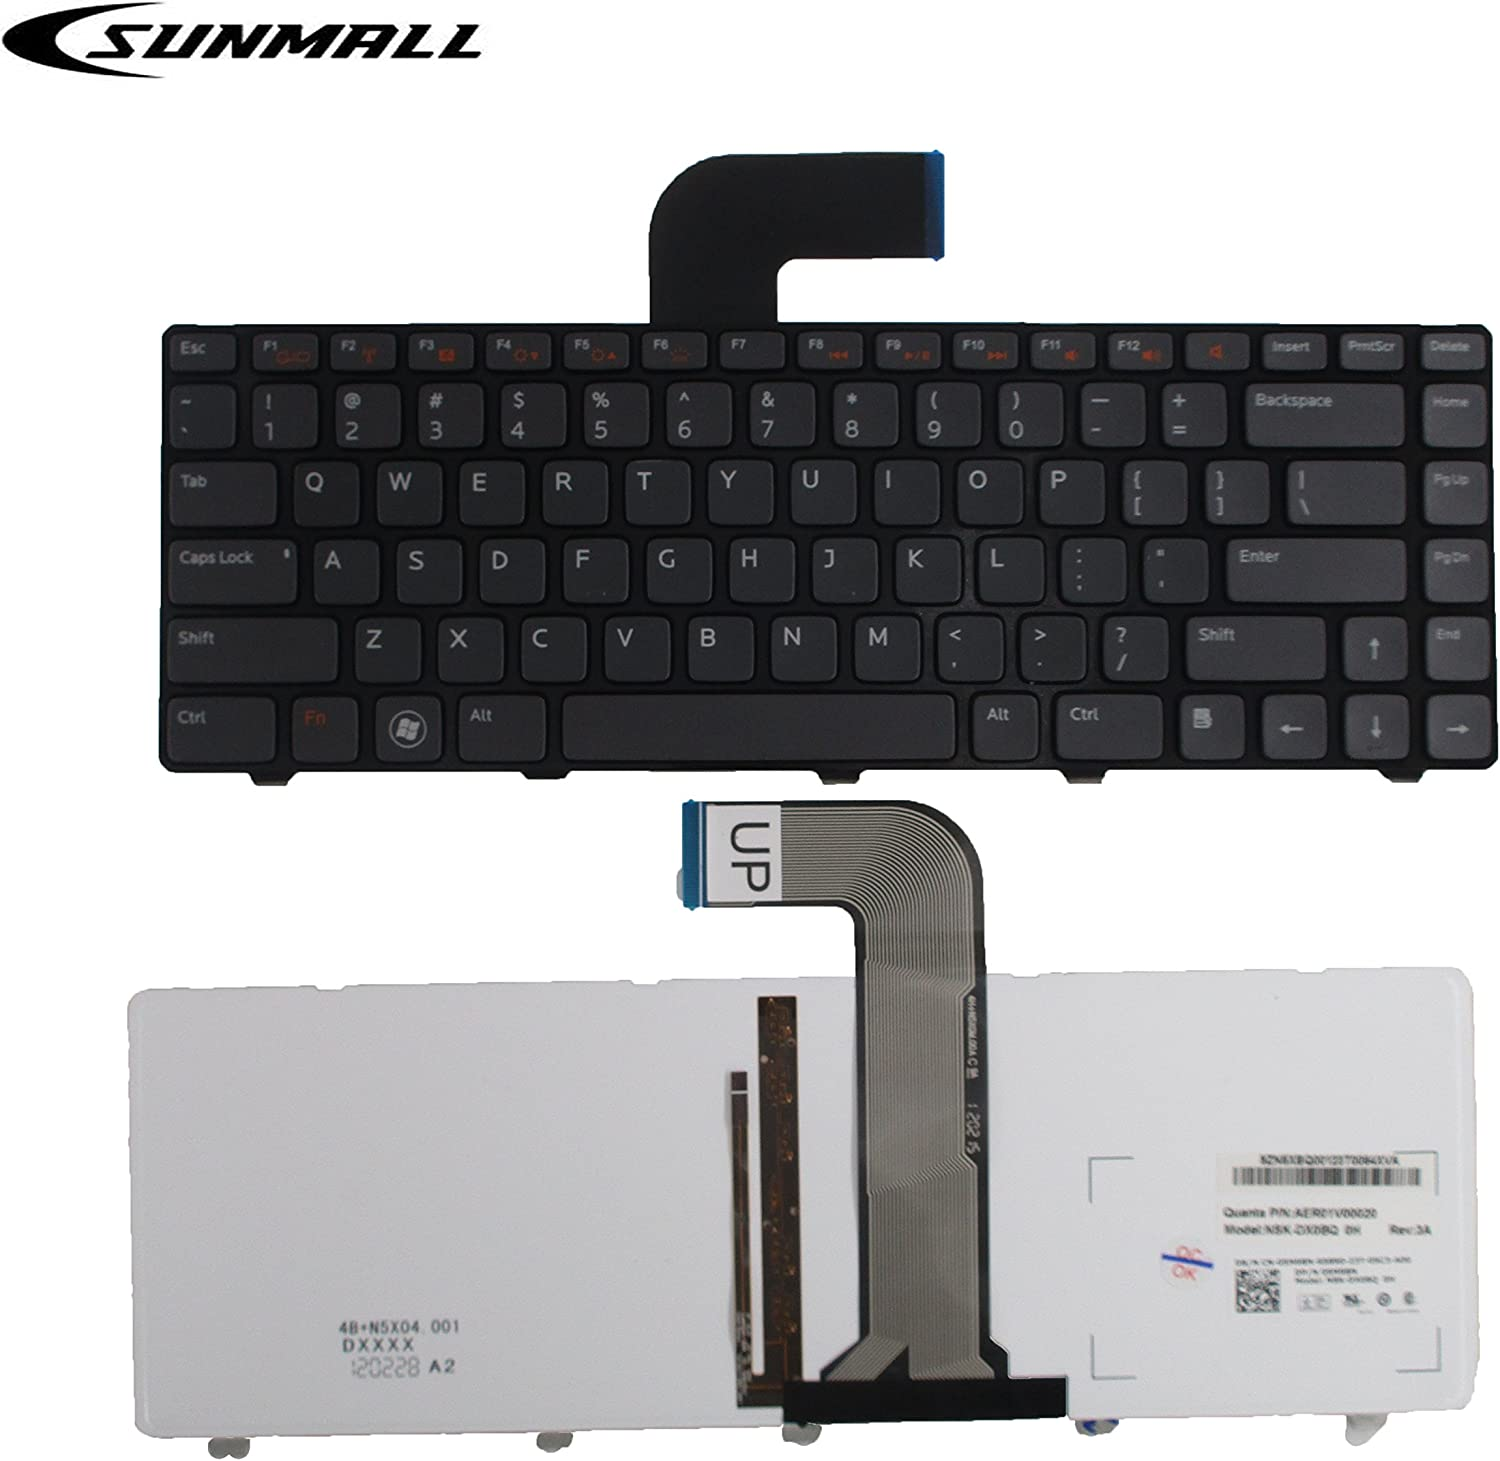 SUNMALL Keyboard Replacement with (Backlit and Frame) Compatible with Dell Inspiron 14R N4110 N4120 M4110 N4050 N5040 N5050 M5040 M5050, VOSTRO 1440 1445 1450 1550 2420 2520 3350 3450 3460